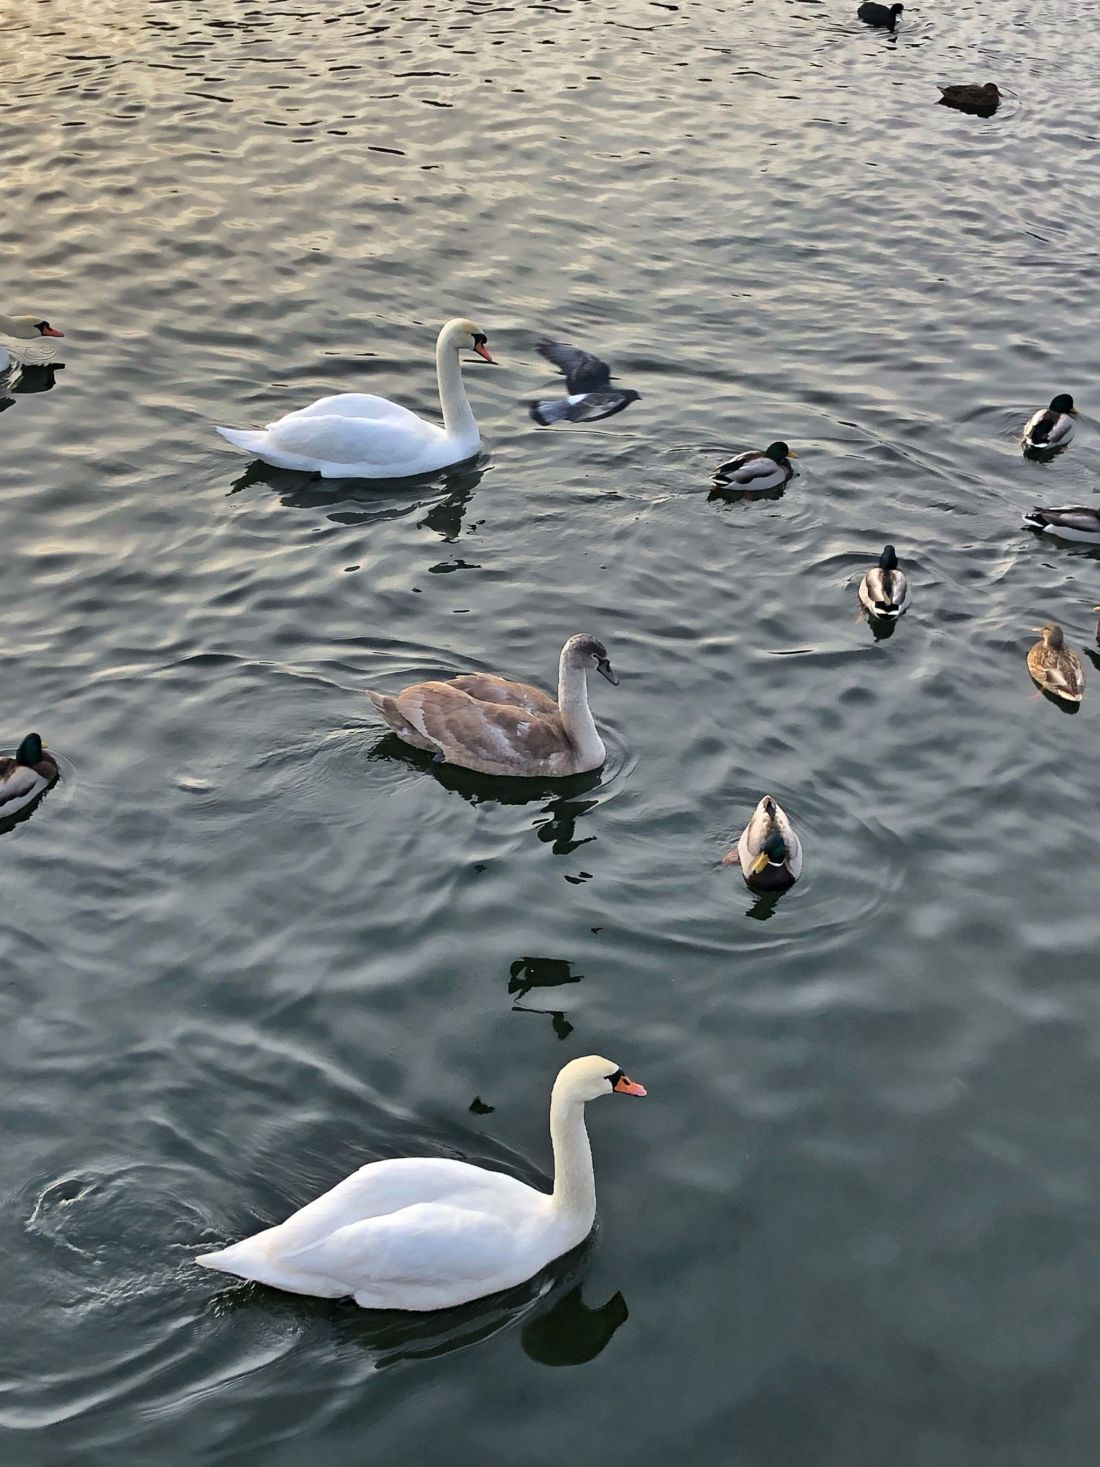 Swans and ducks in Stockholm